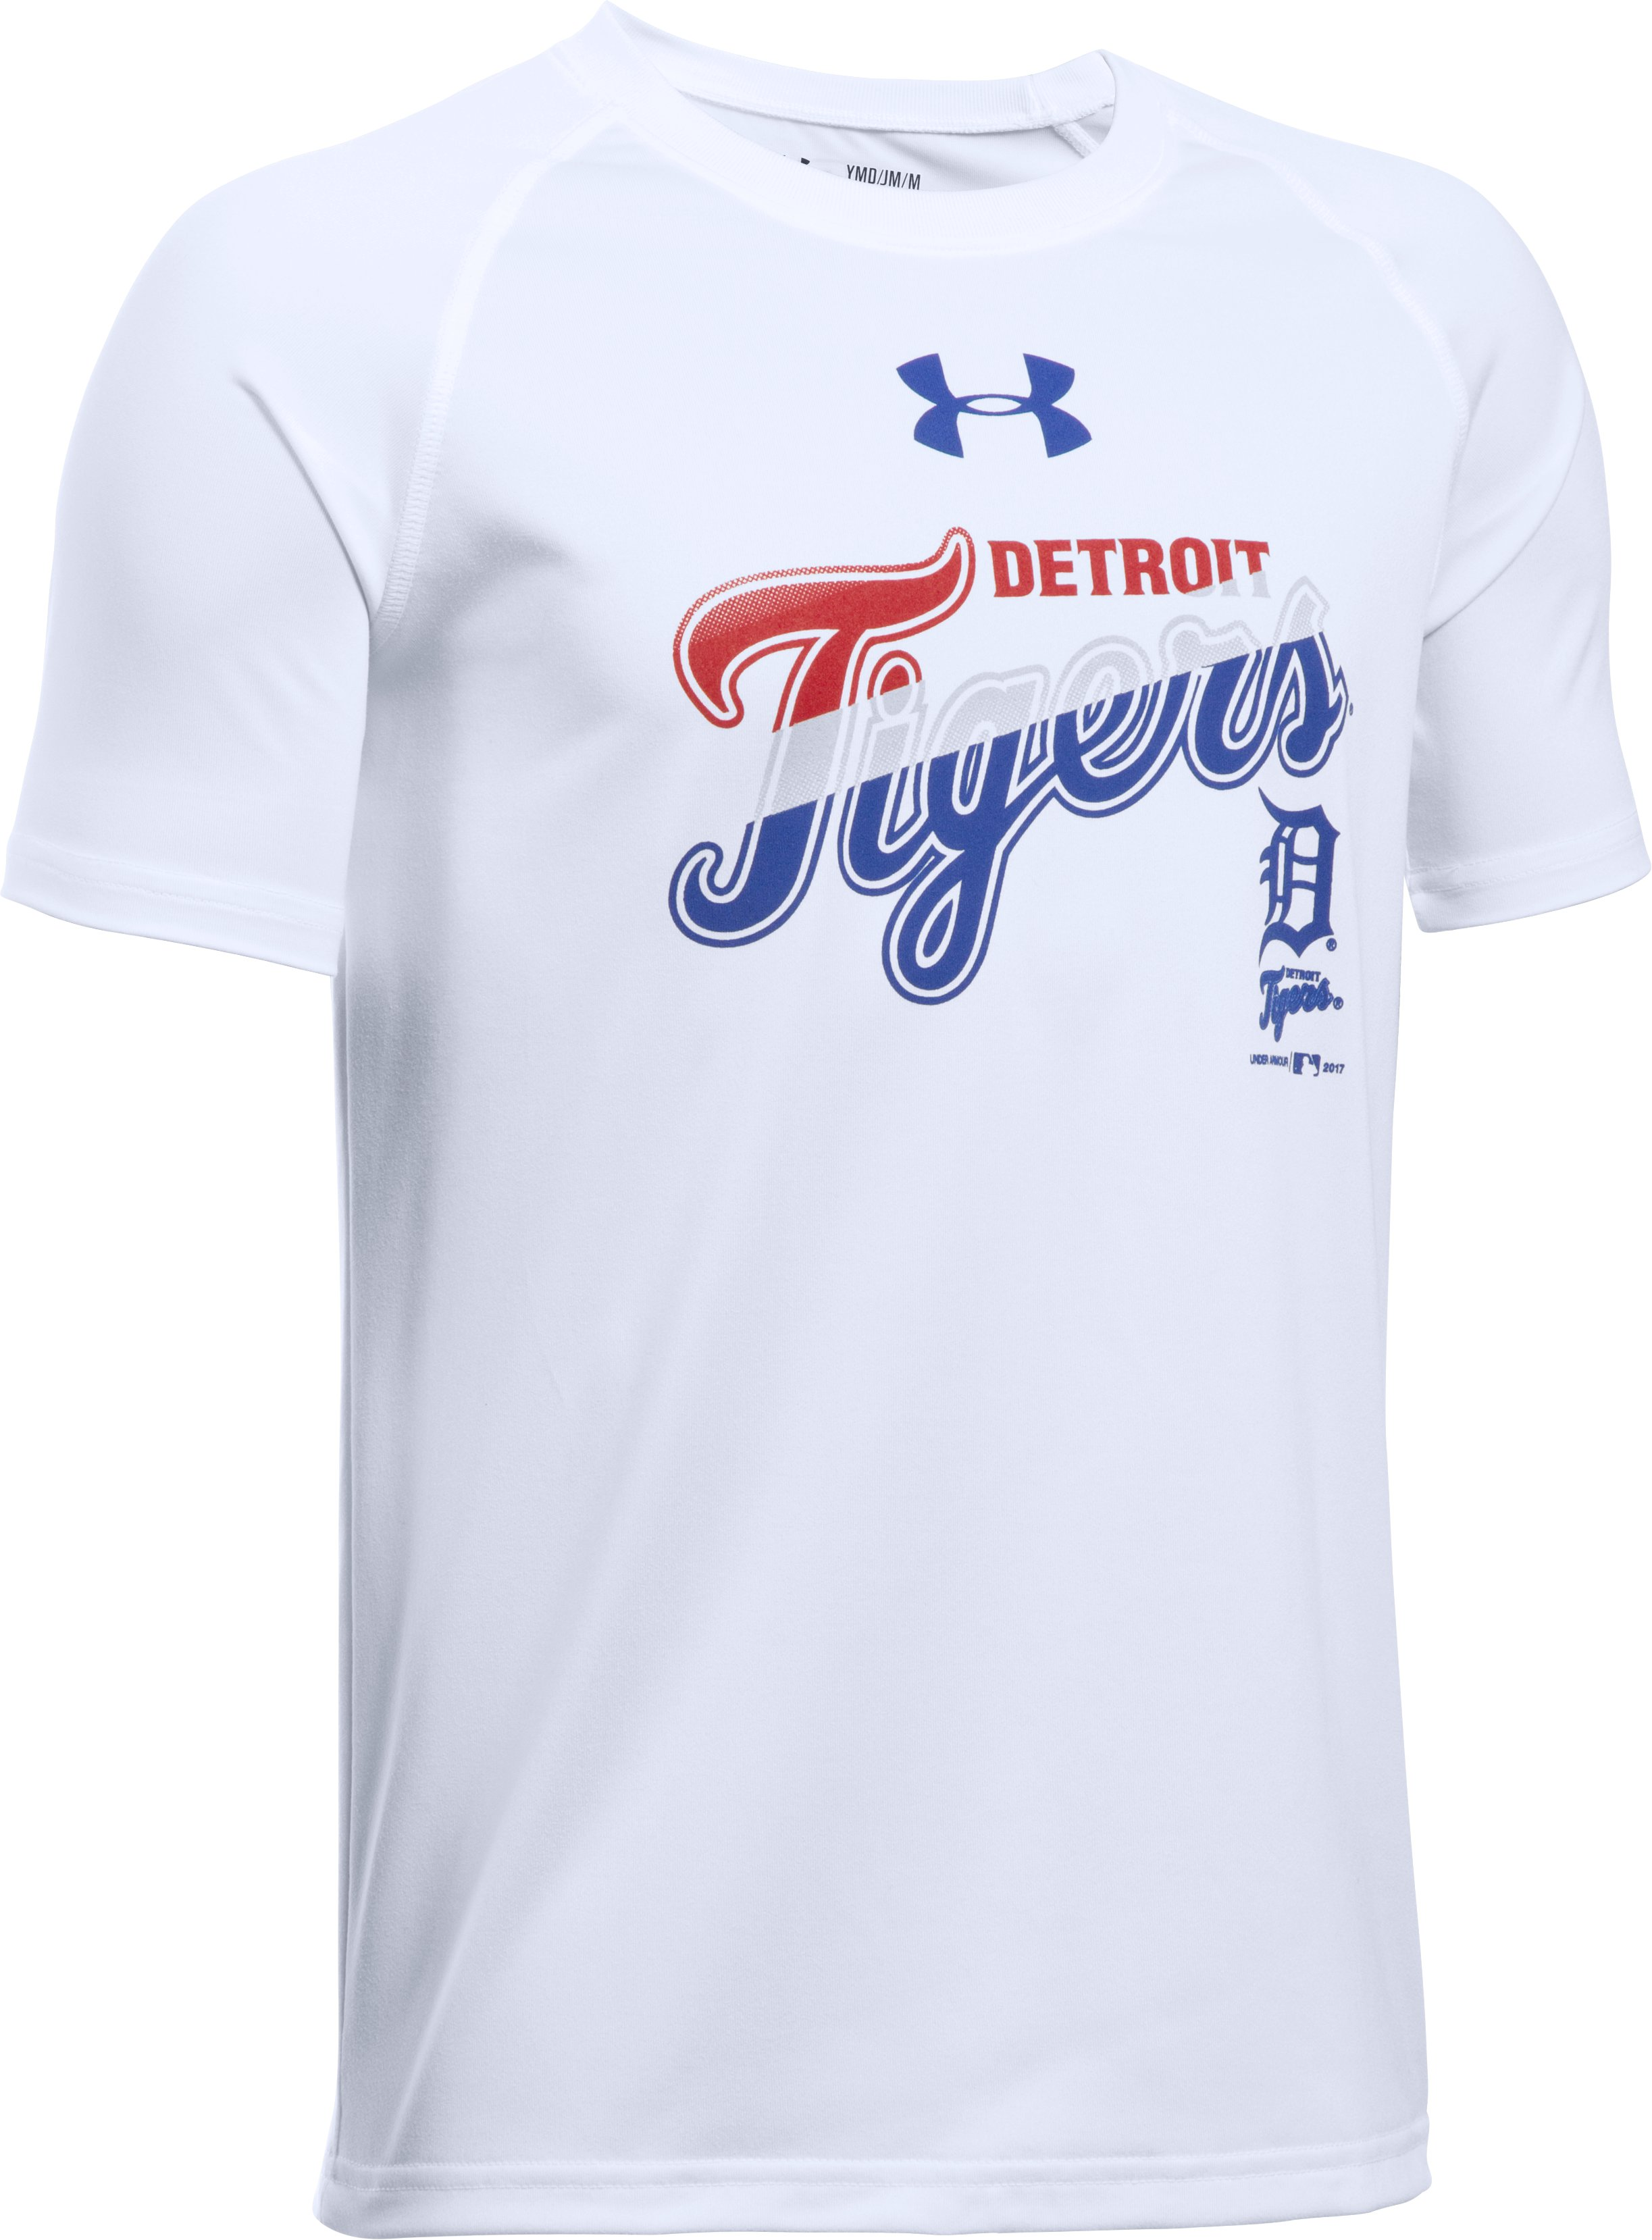 Boys' Detroit Tigers T-Shirt, White